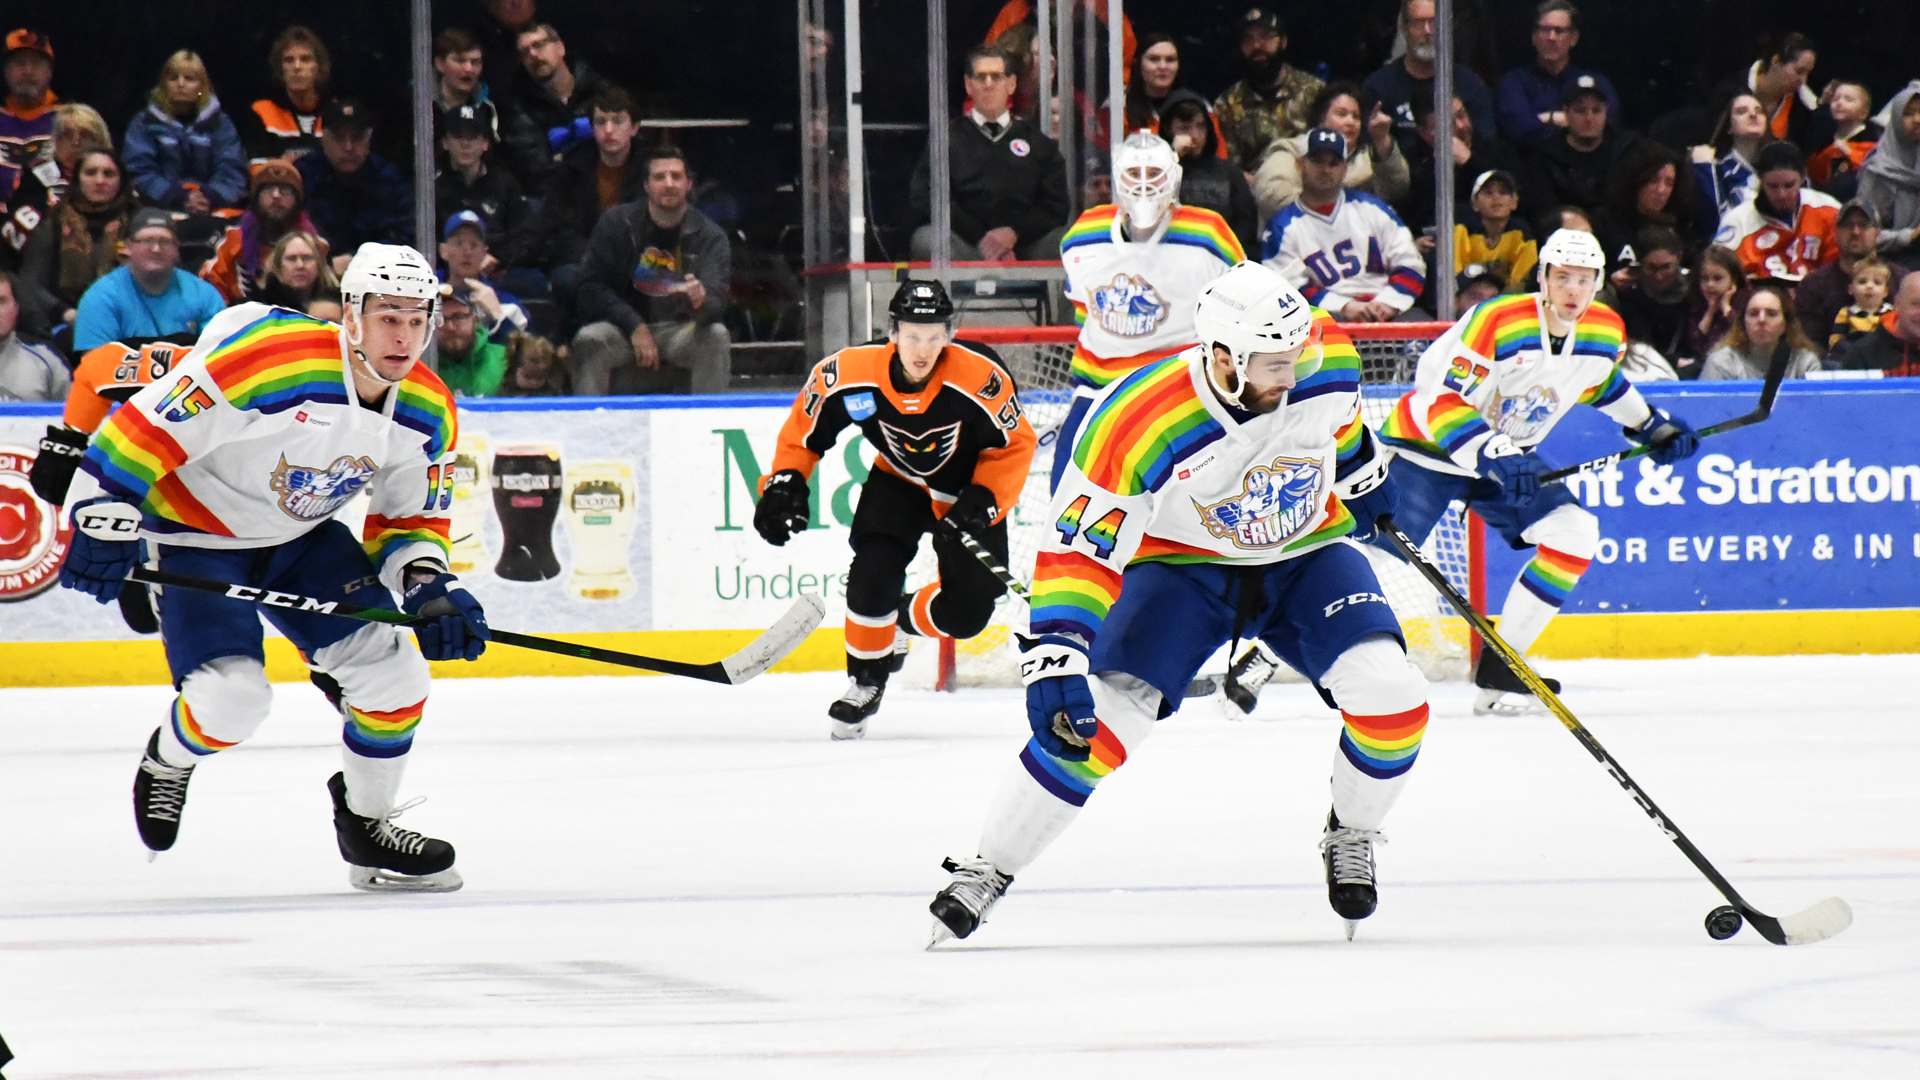 Crunch defeat Phantoms, 2-1